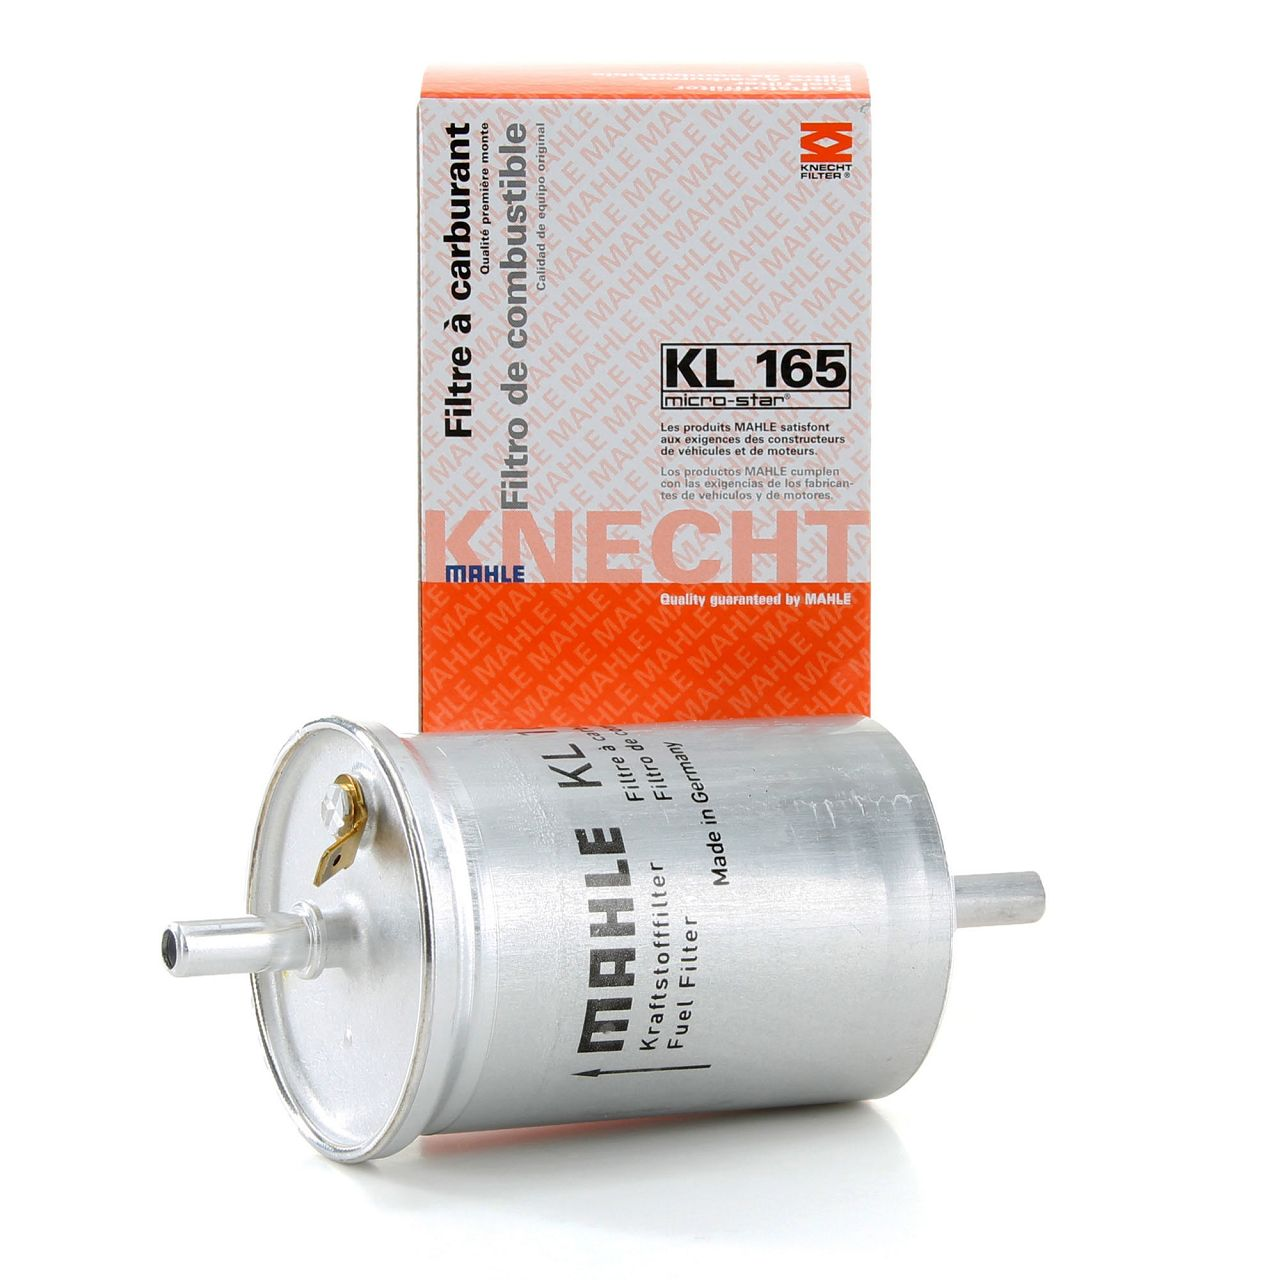 MAHLE Kraftstofffilter Dieselfilter KL165 Smart Cabrio City-Coupe ForTwo 0.8CDI